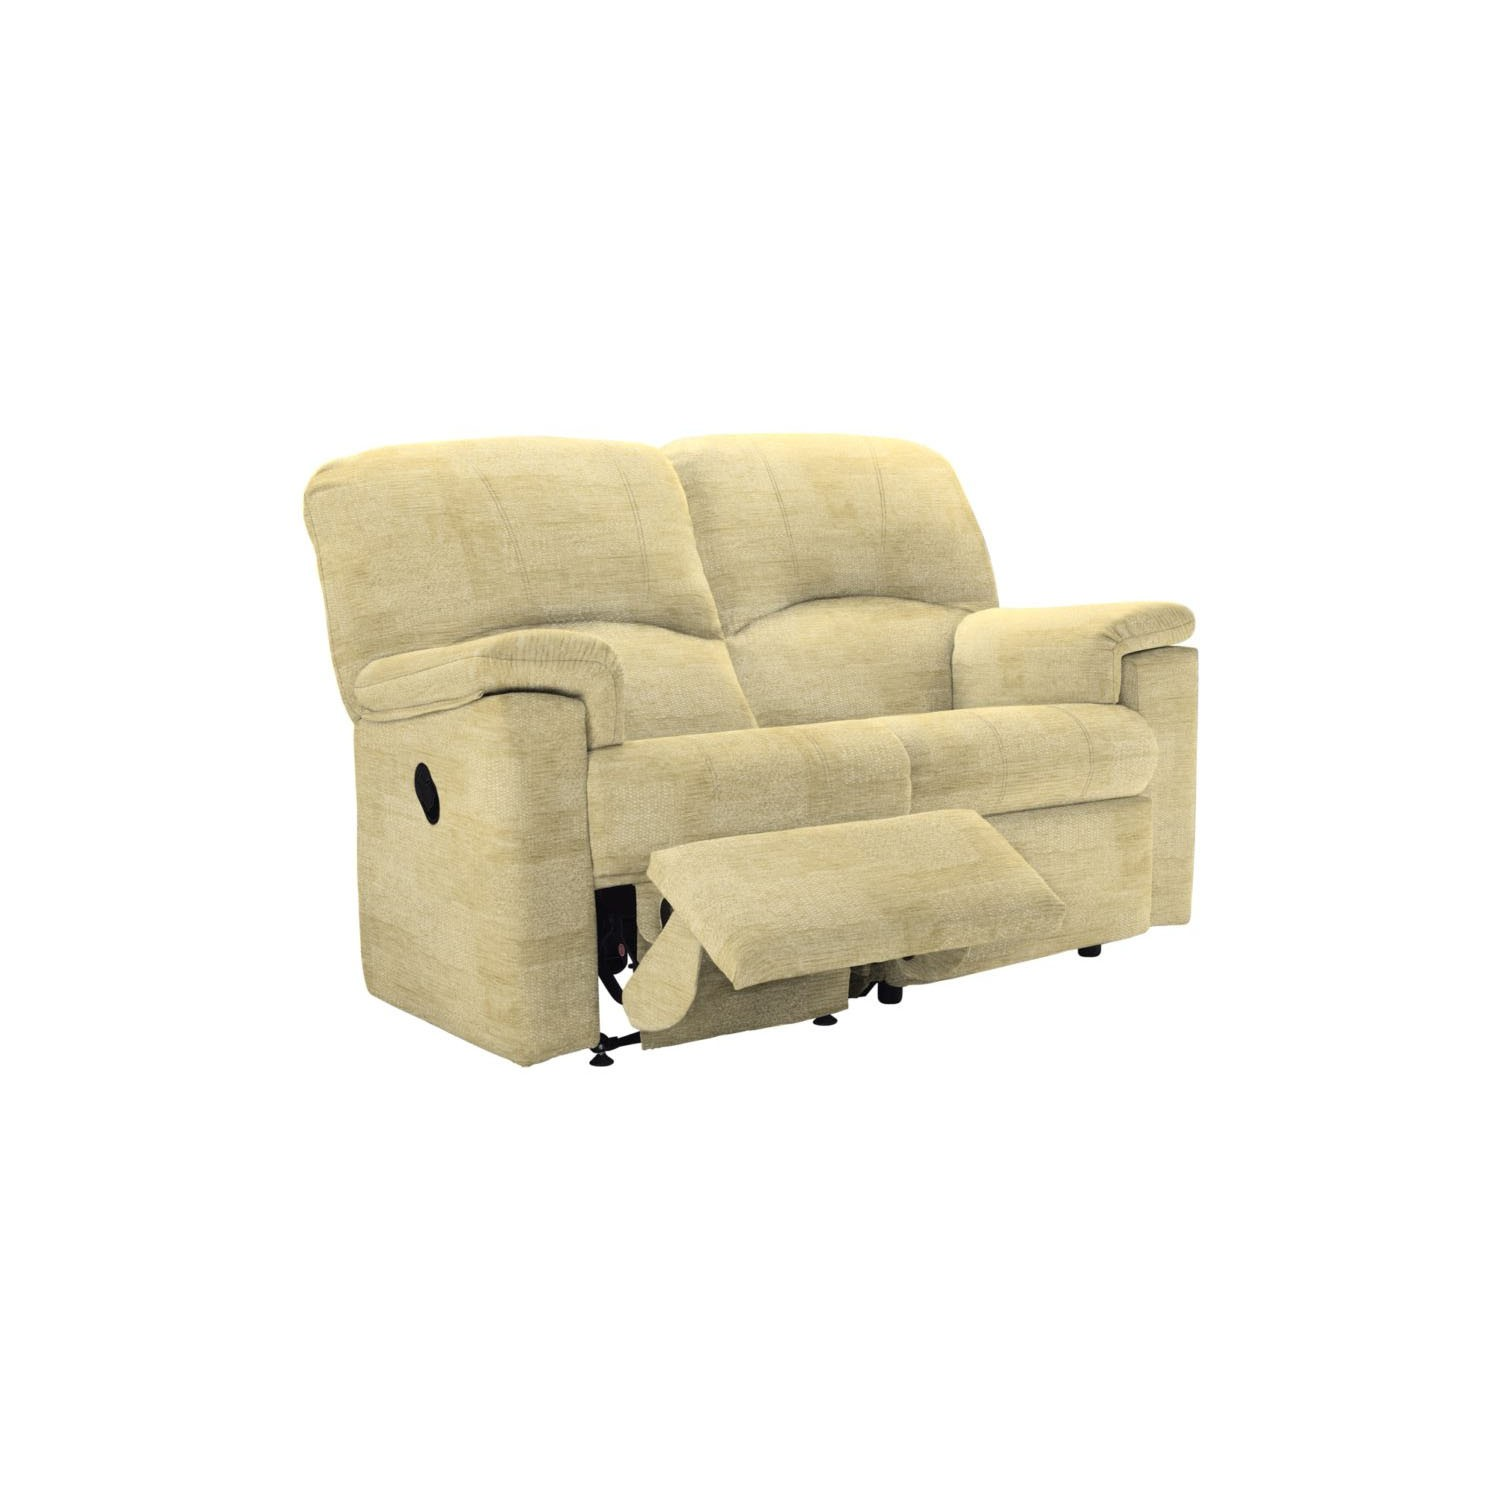 2 seater power recliner sofa covers with separate cushion g plan chloe double leekes